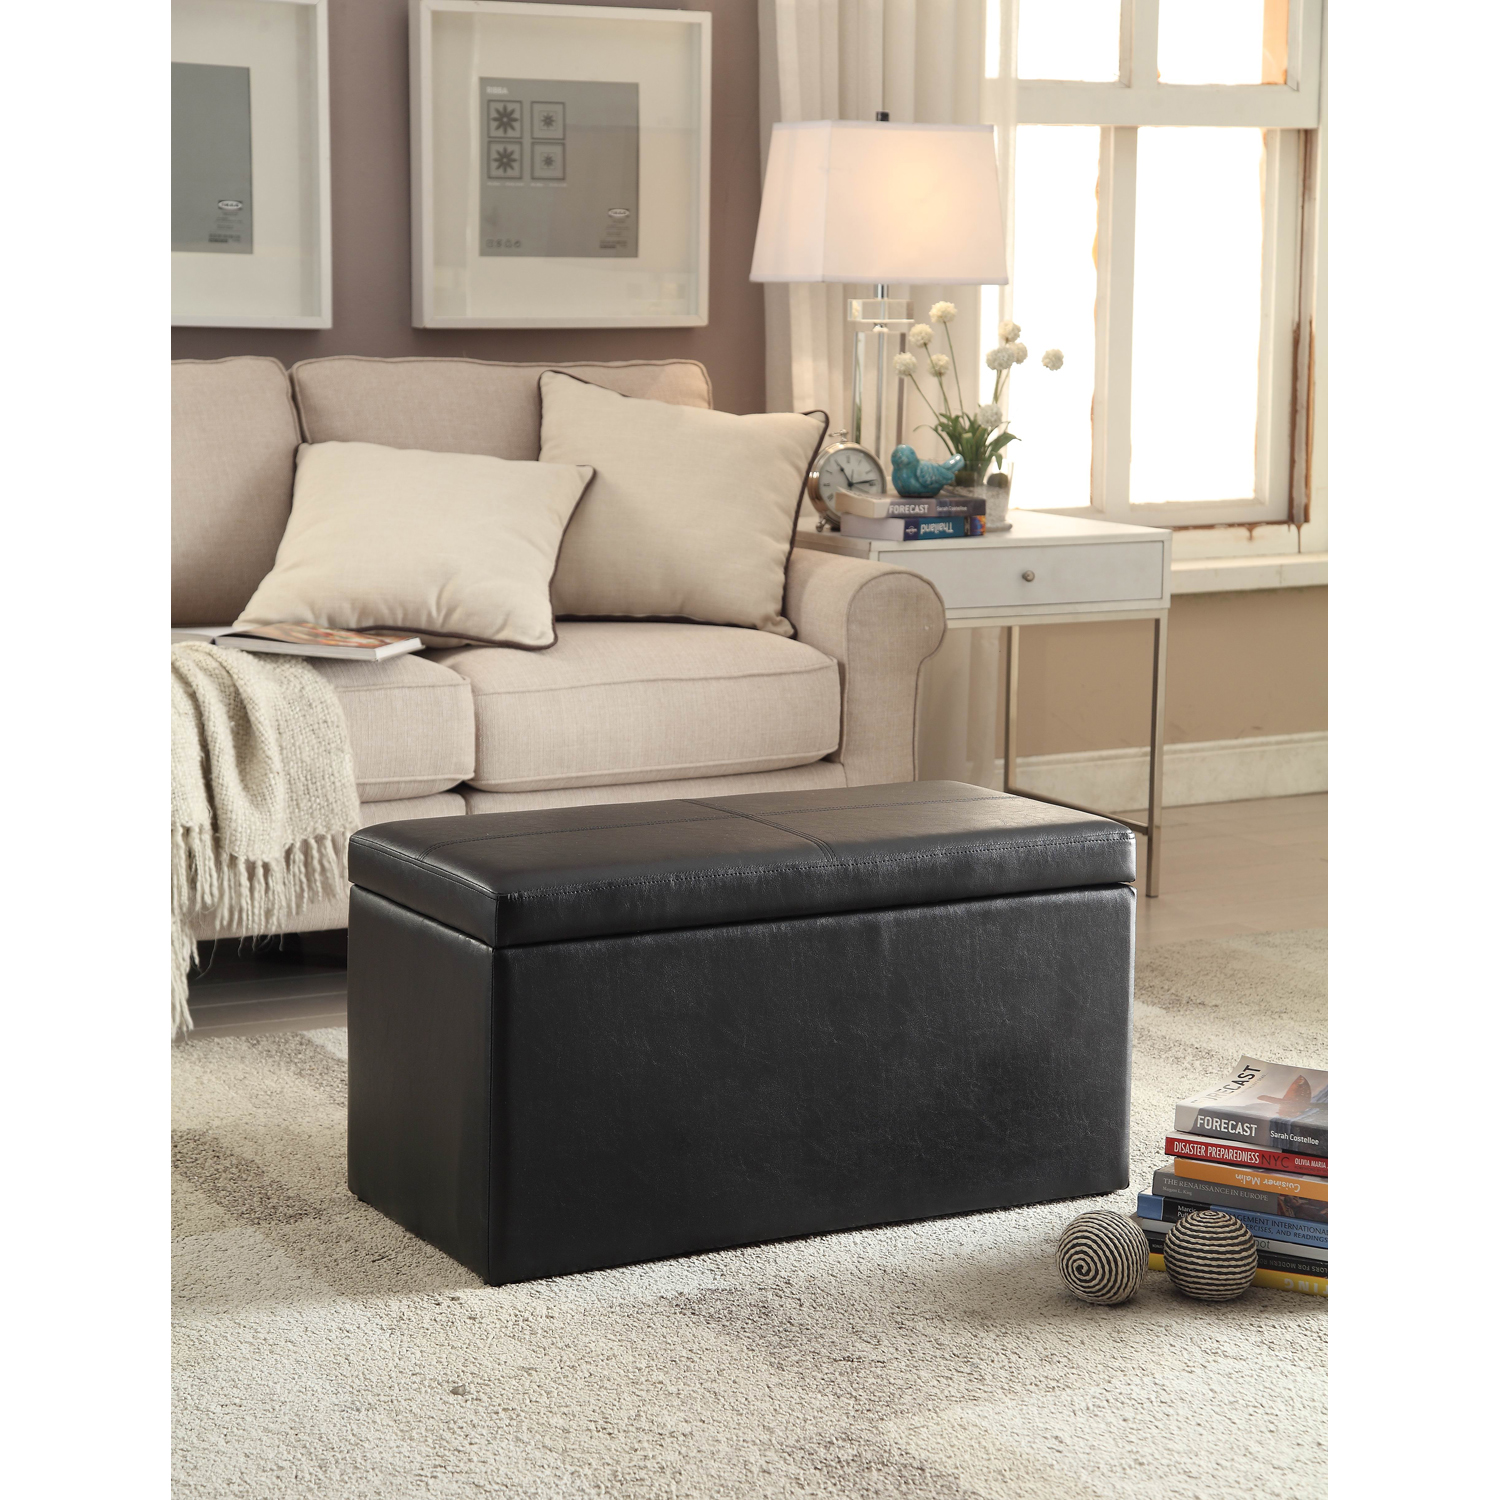 "Better Homes and Gardens 30"" Faux Leather Hinged Storage Ottoman Black by EVER GRACE INDUSTRY LIMITED"